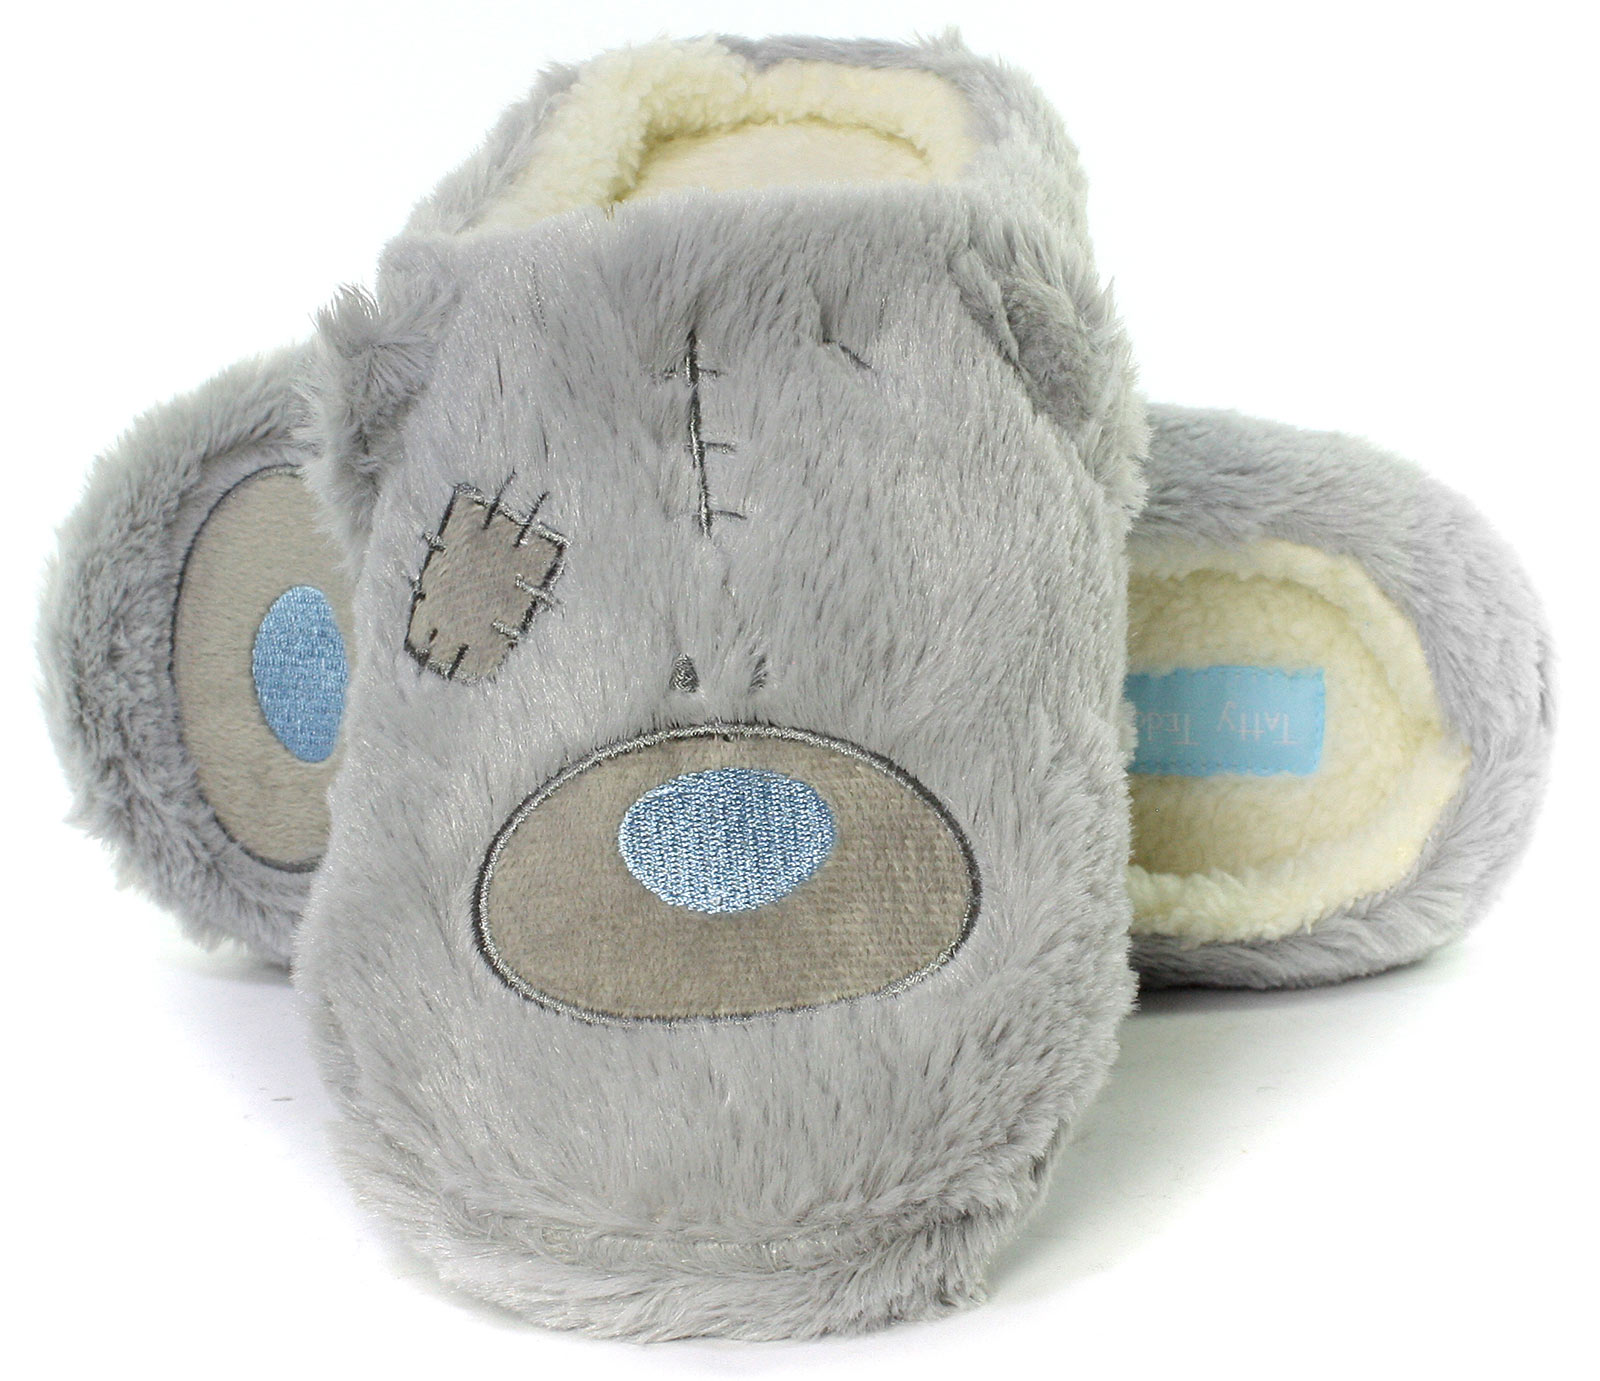 New-Me-to-You-Tatty-Teddy-Womens-Novelty-Mule-Slippers-ALL-SIZES thumbnail 2